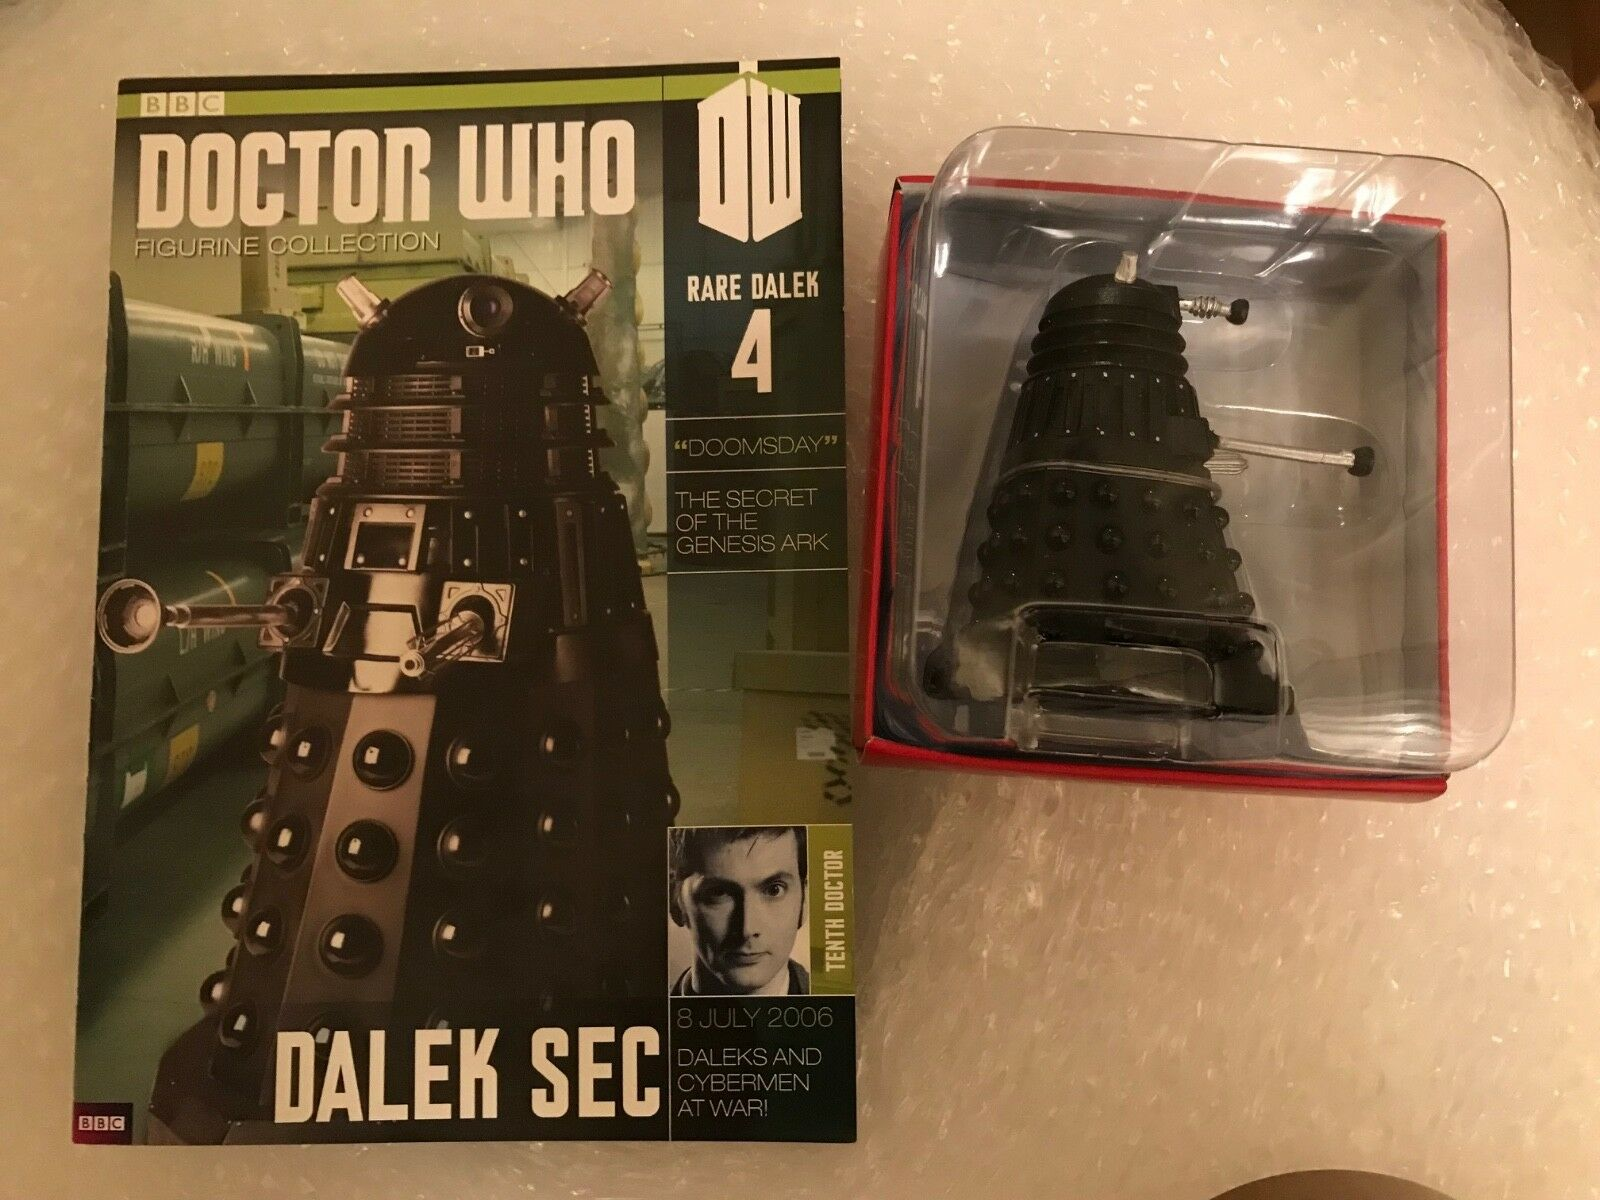 Doctor Who Eaglemoss - Figurine- Special Edition - SD4 - Dalek Sec - rare dalek